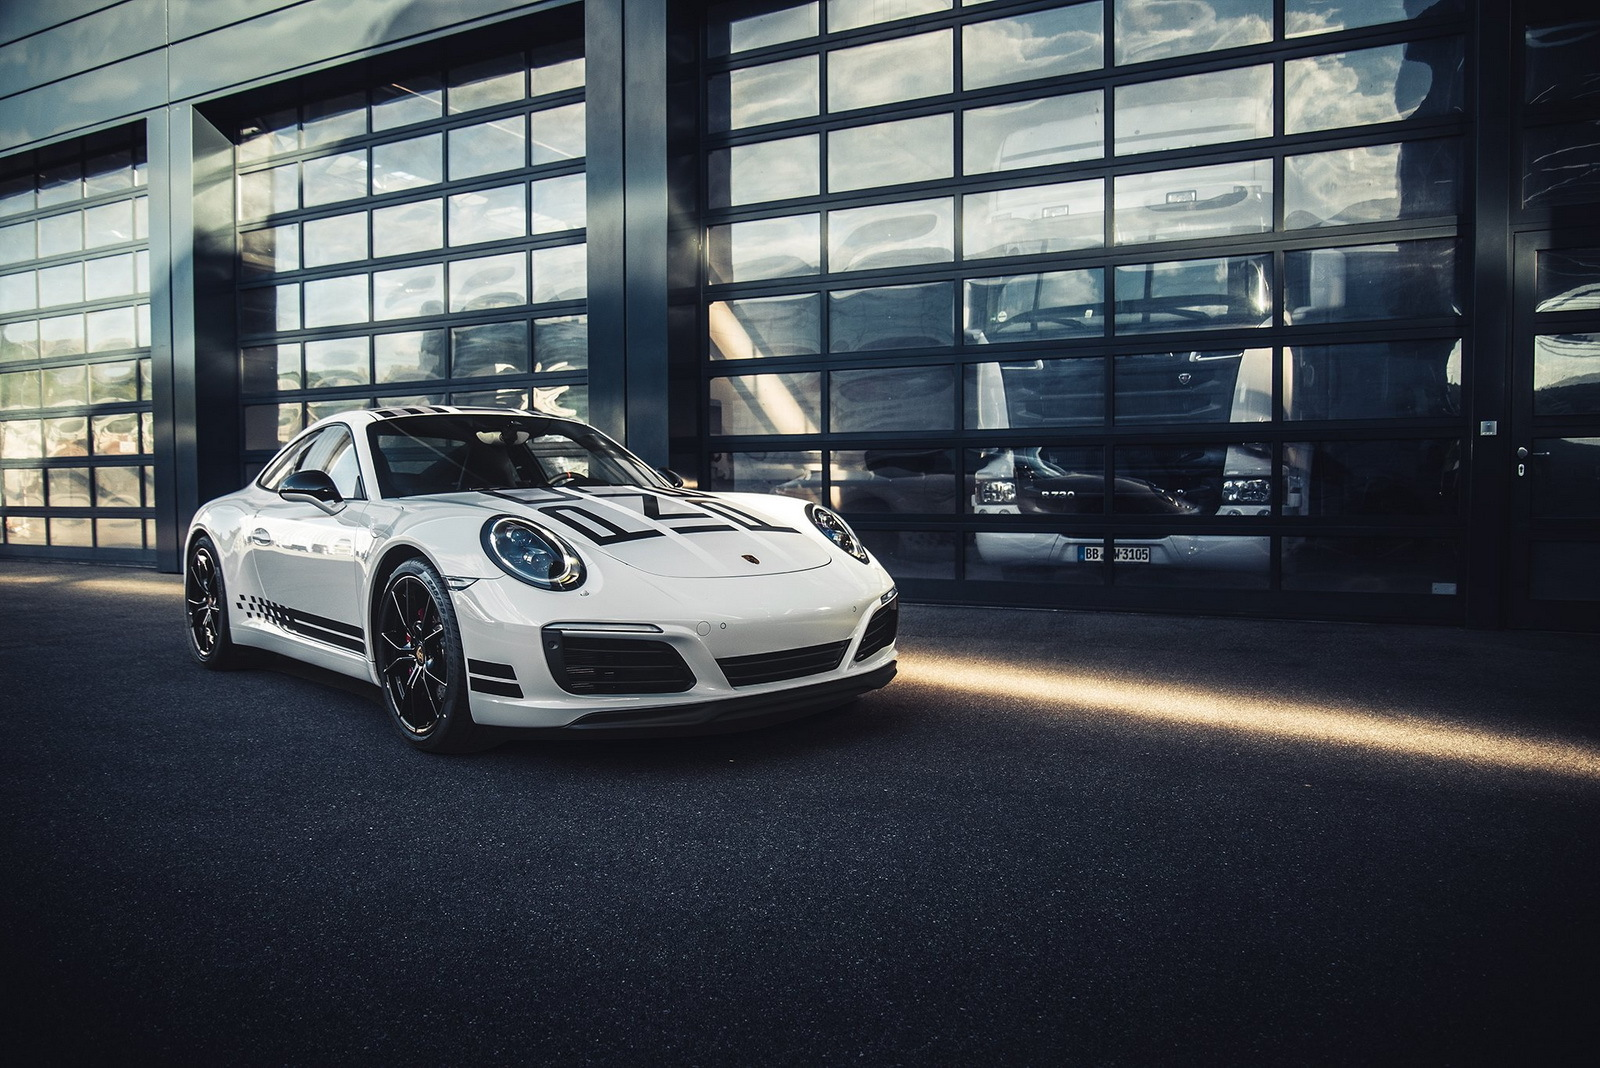 Foto de Porsche 911 Carrera S Endurance Racing Edition (3/10)